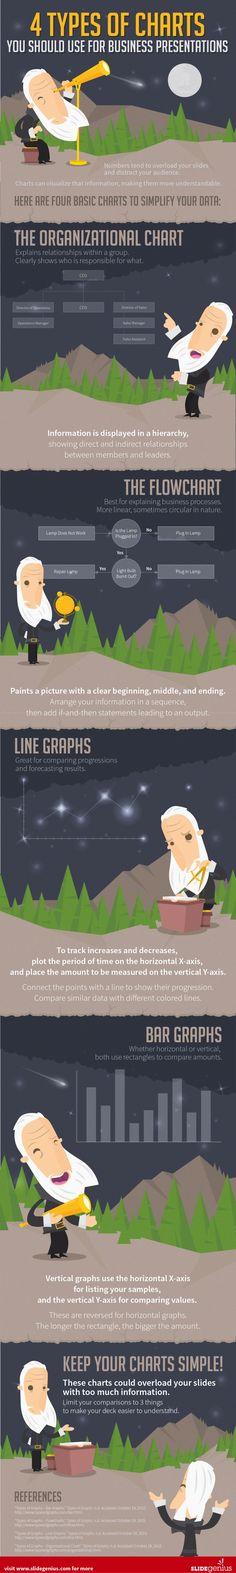 4 Types of Charts You Should Use for Business Presentations #Infographic #Business